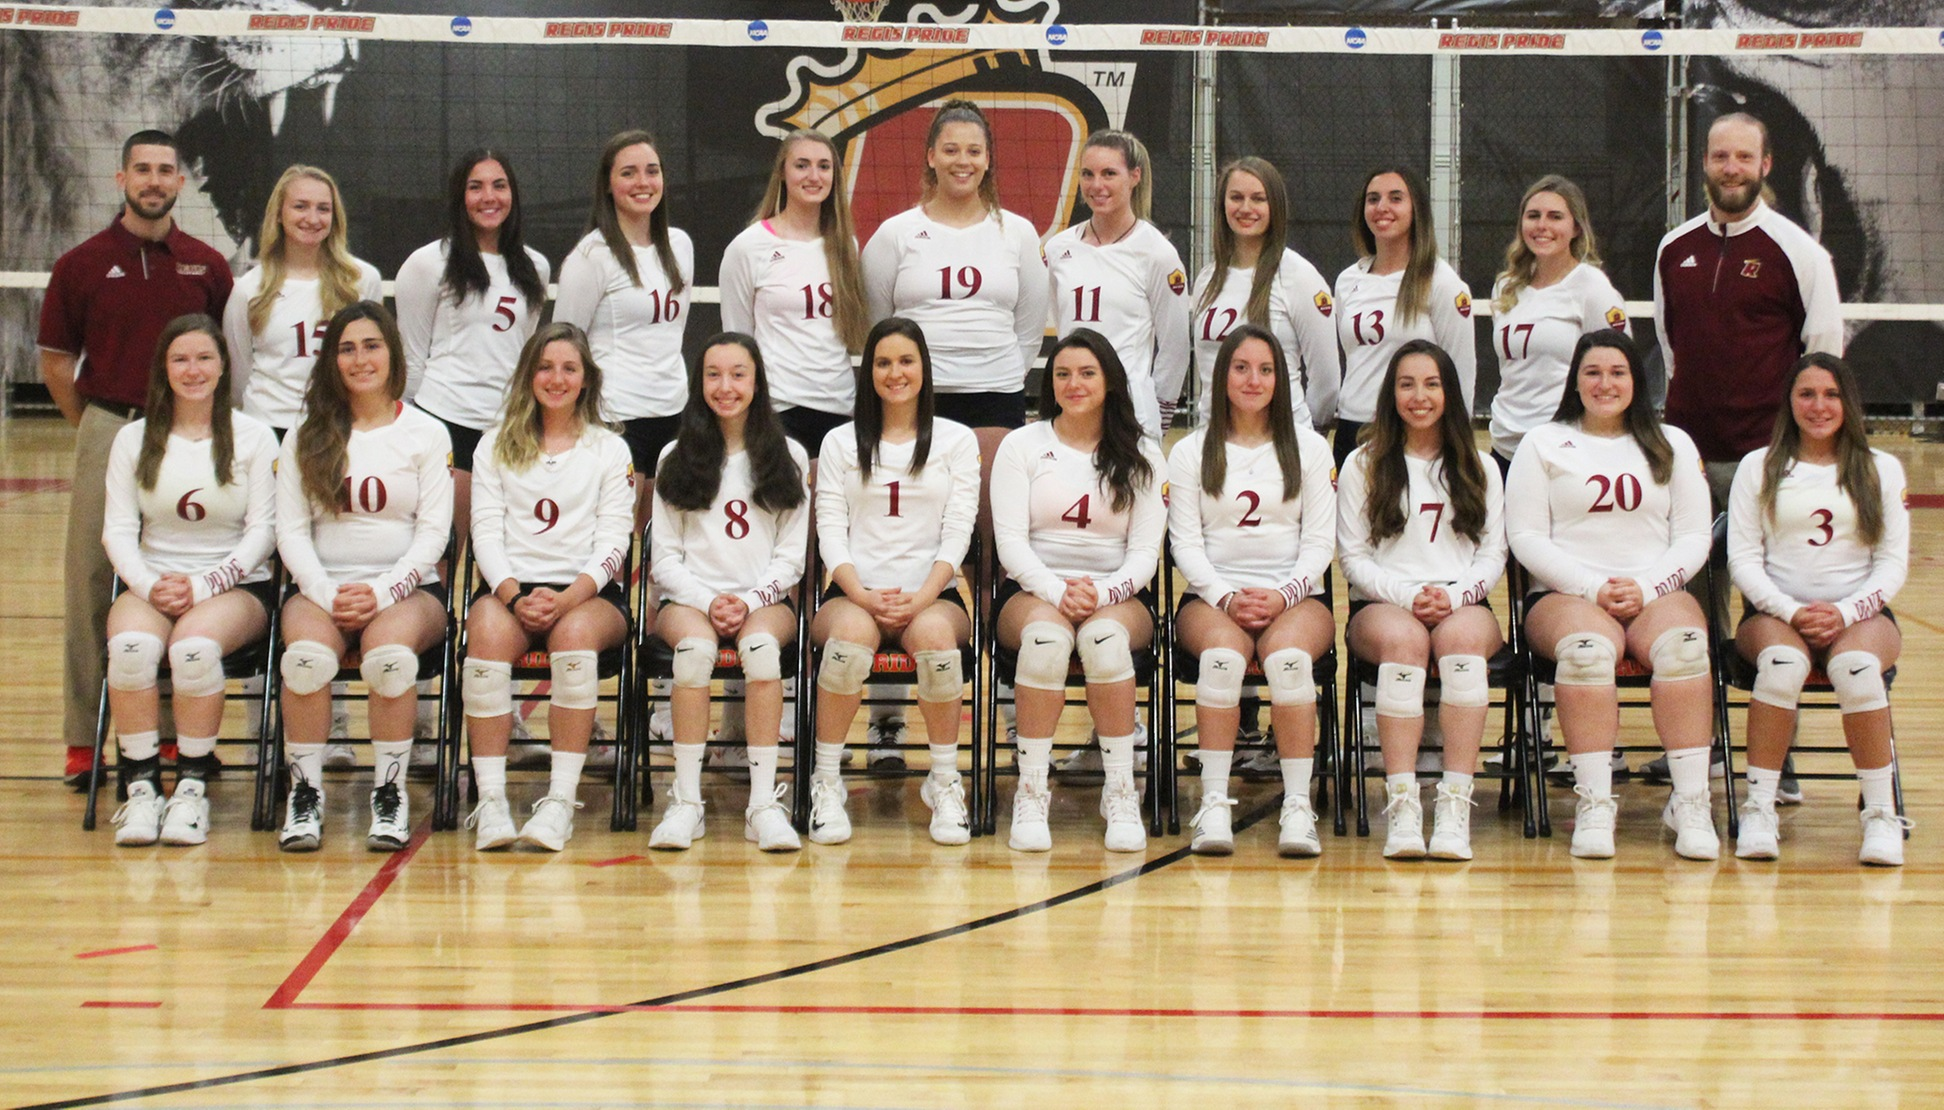 2018 Regis Women's Volleyball: Never Giving Up